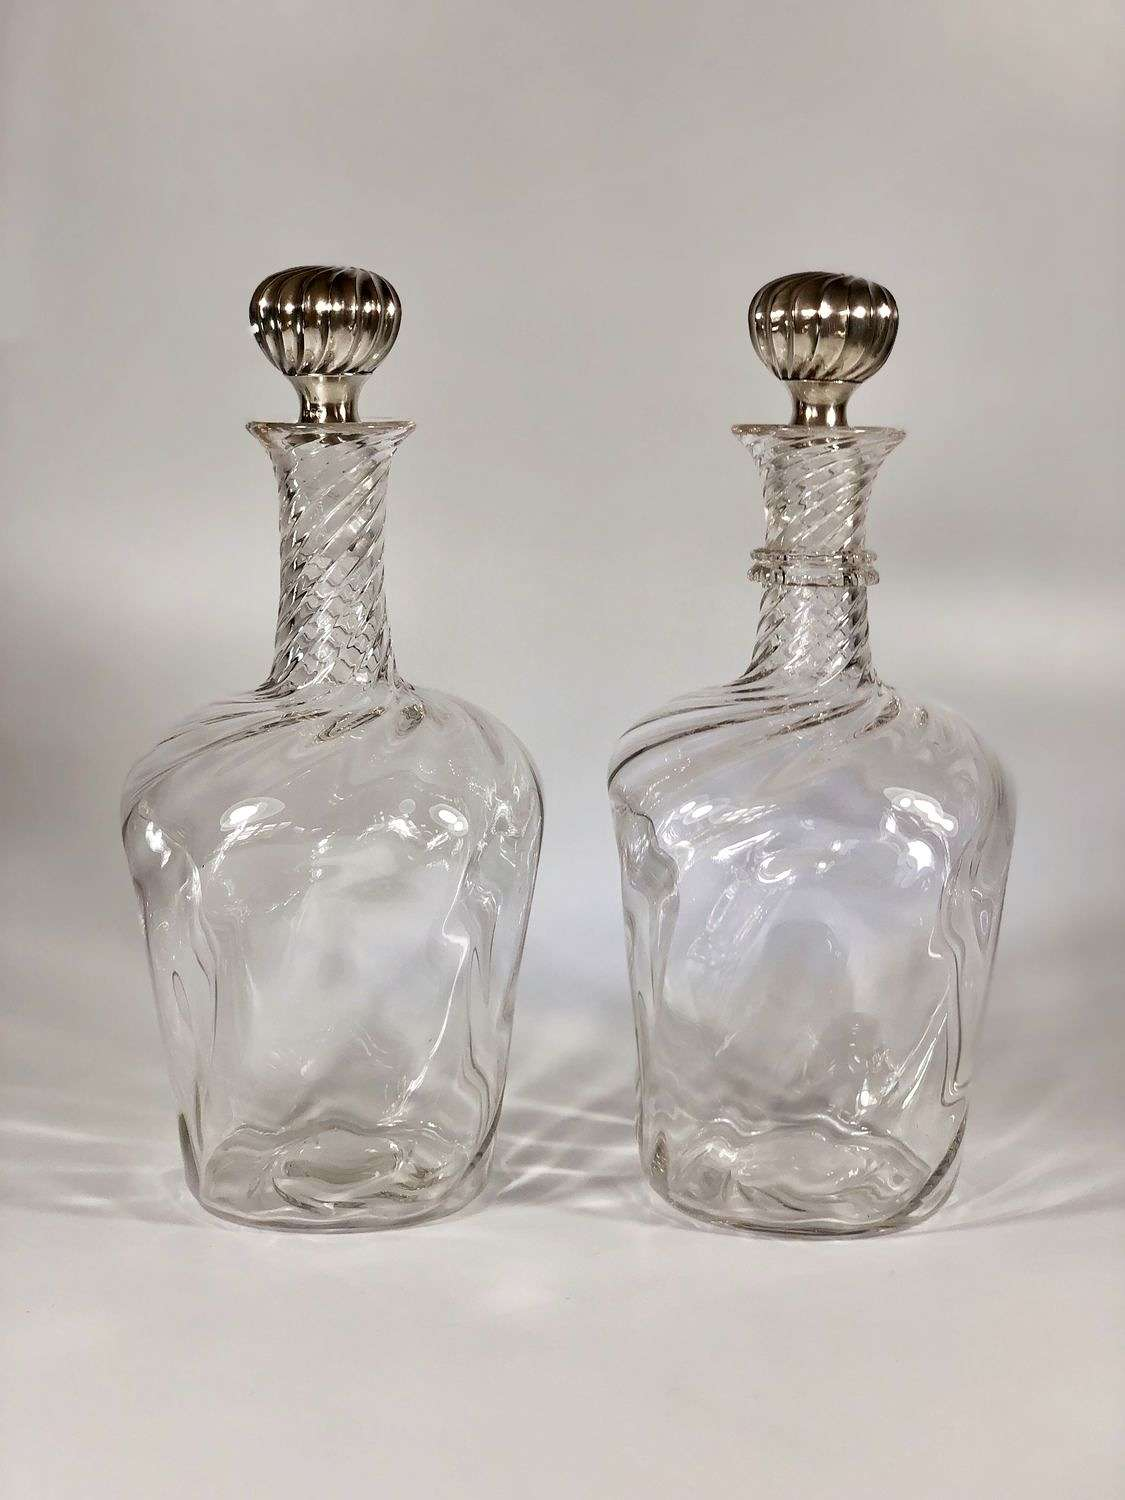 Exceptional pair of silver topped decanters